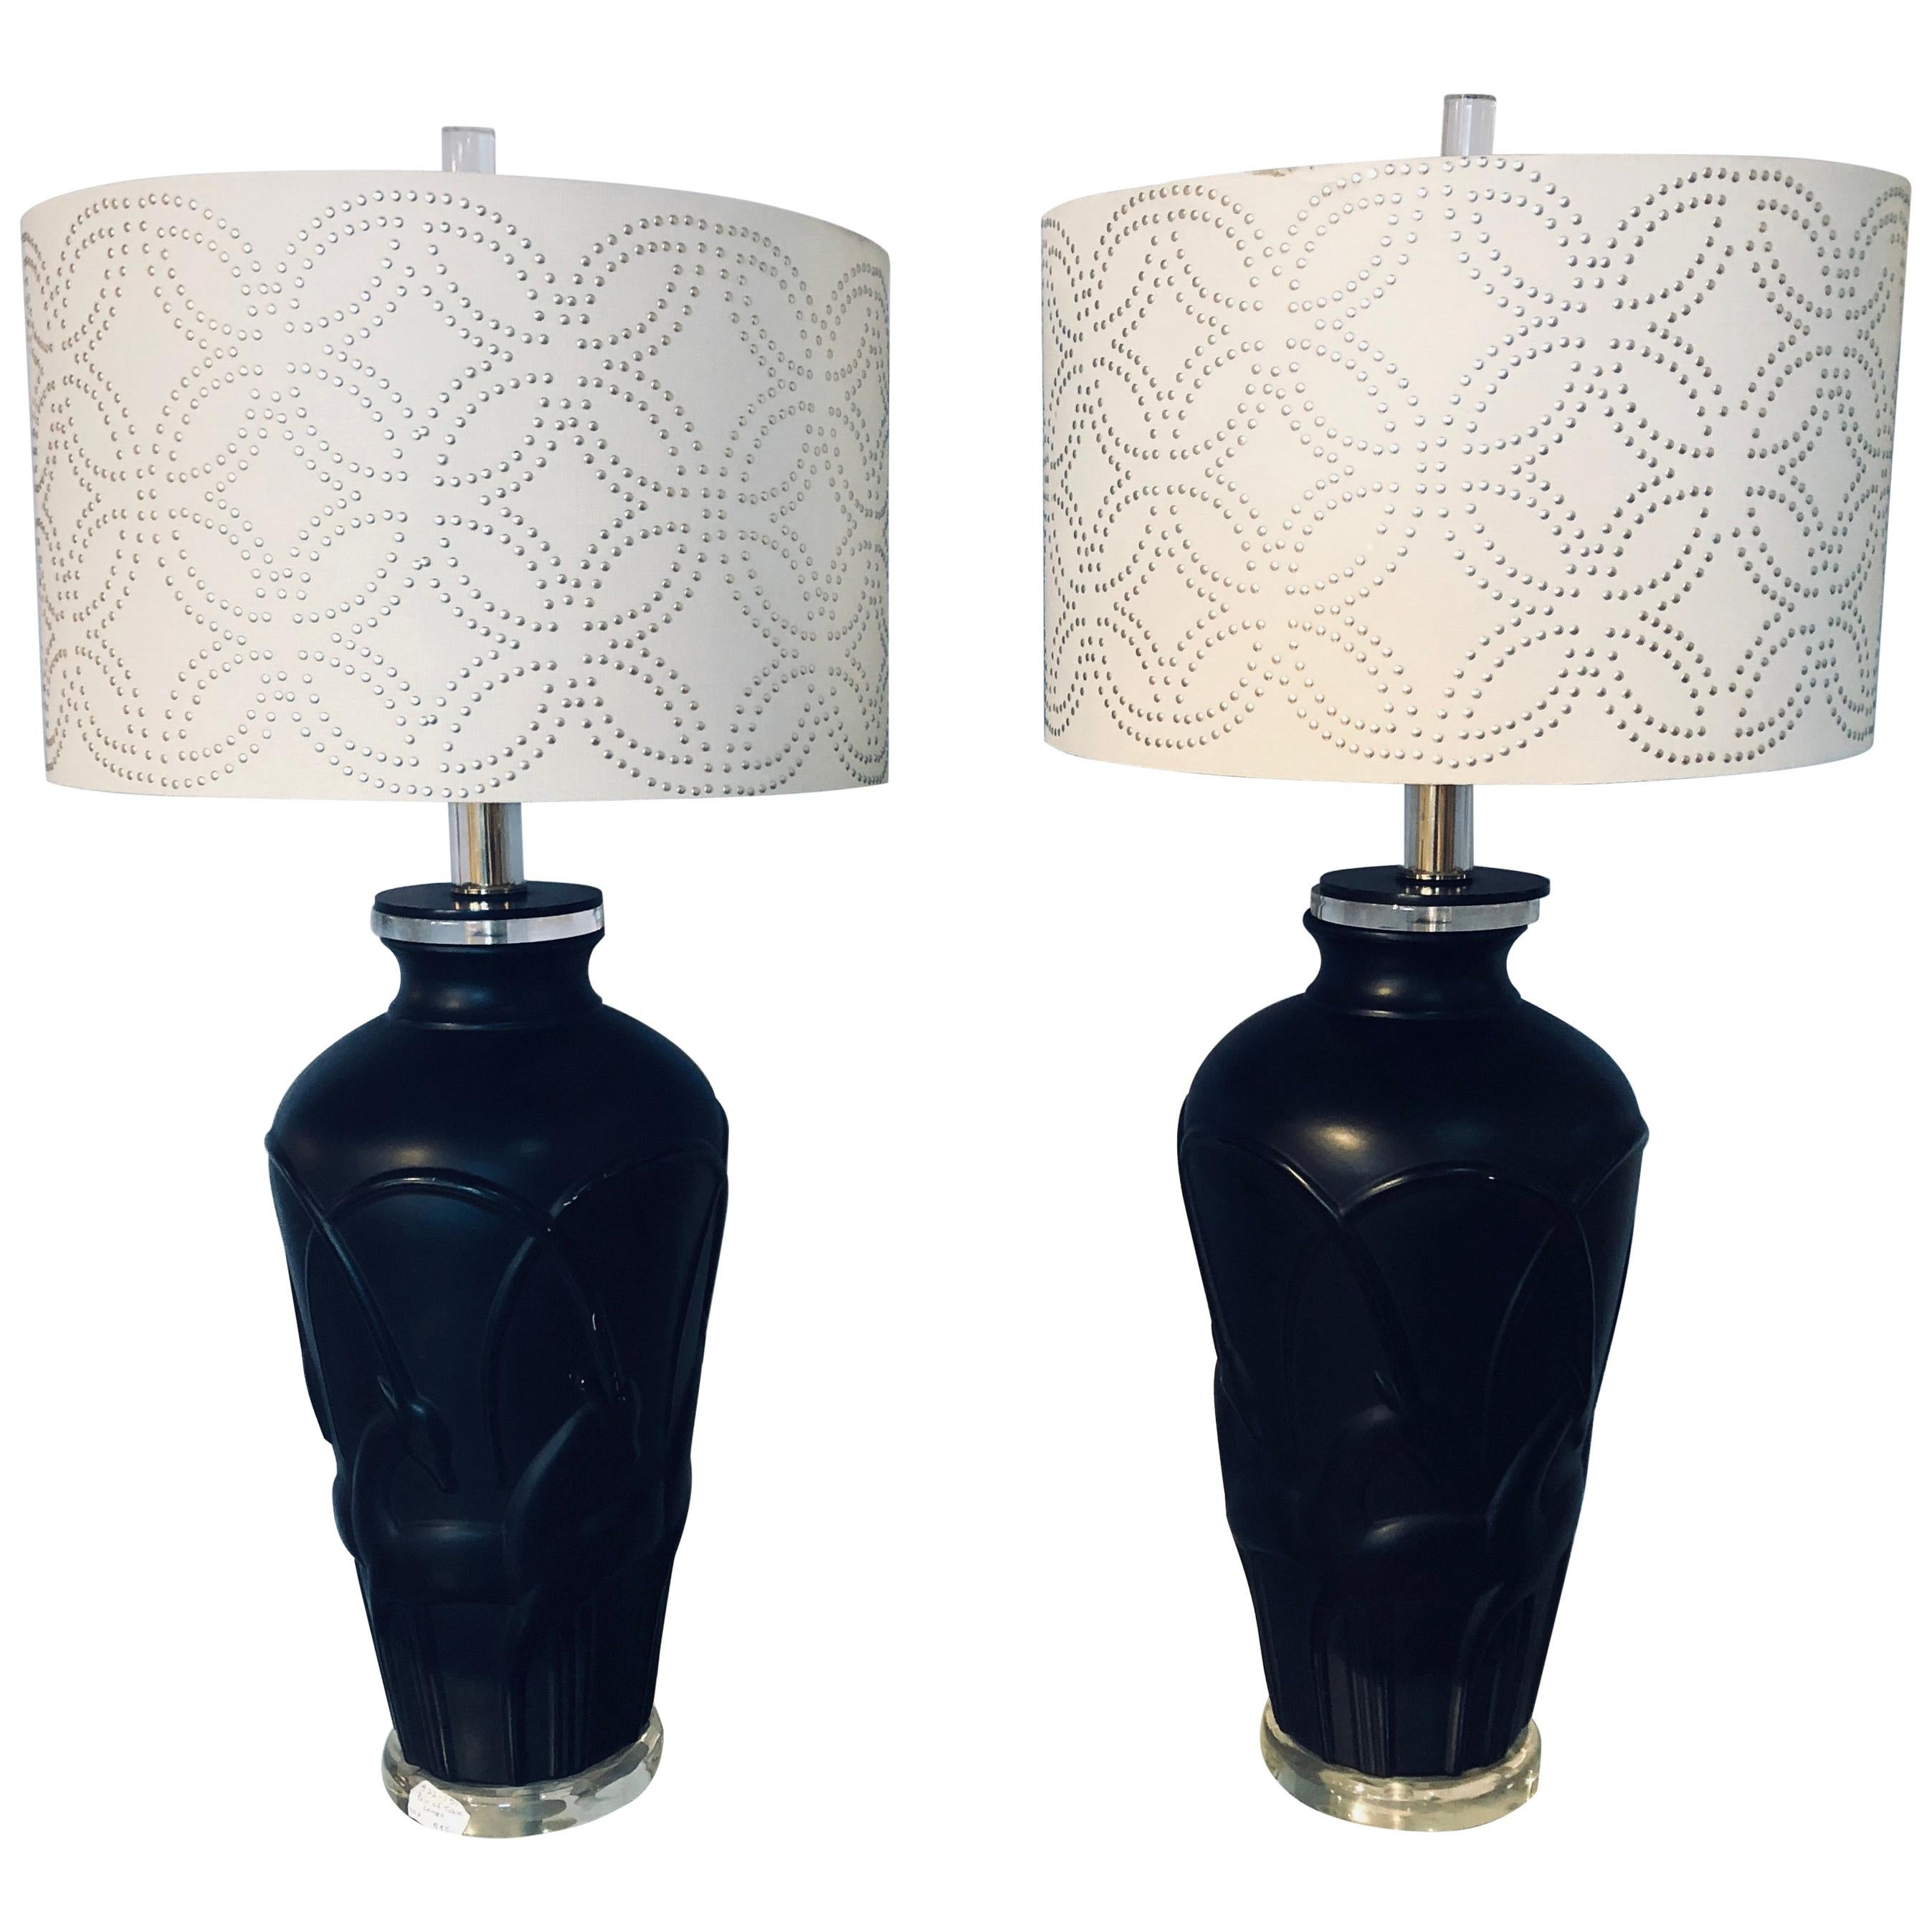 Pair Of Art Deco Style Modern Black Table Lamps Lucite Base And Antelopes  For Sale